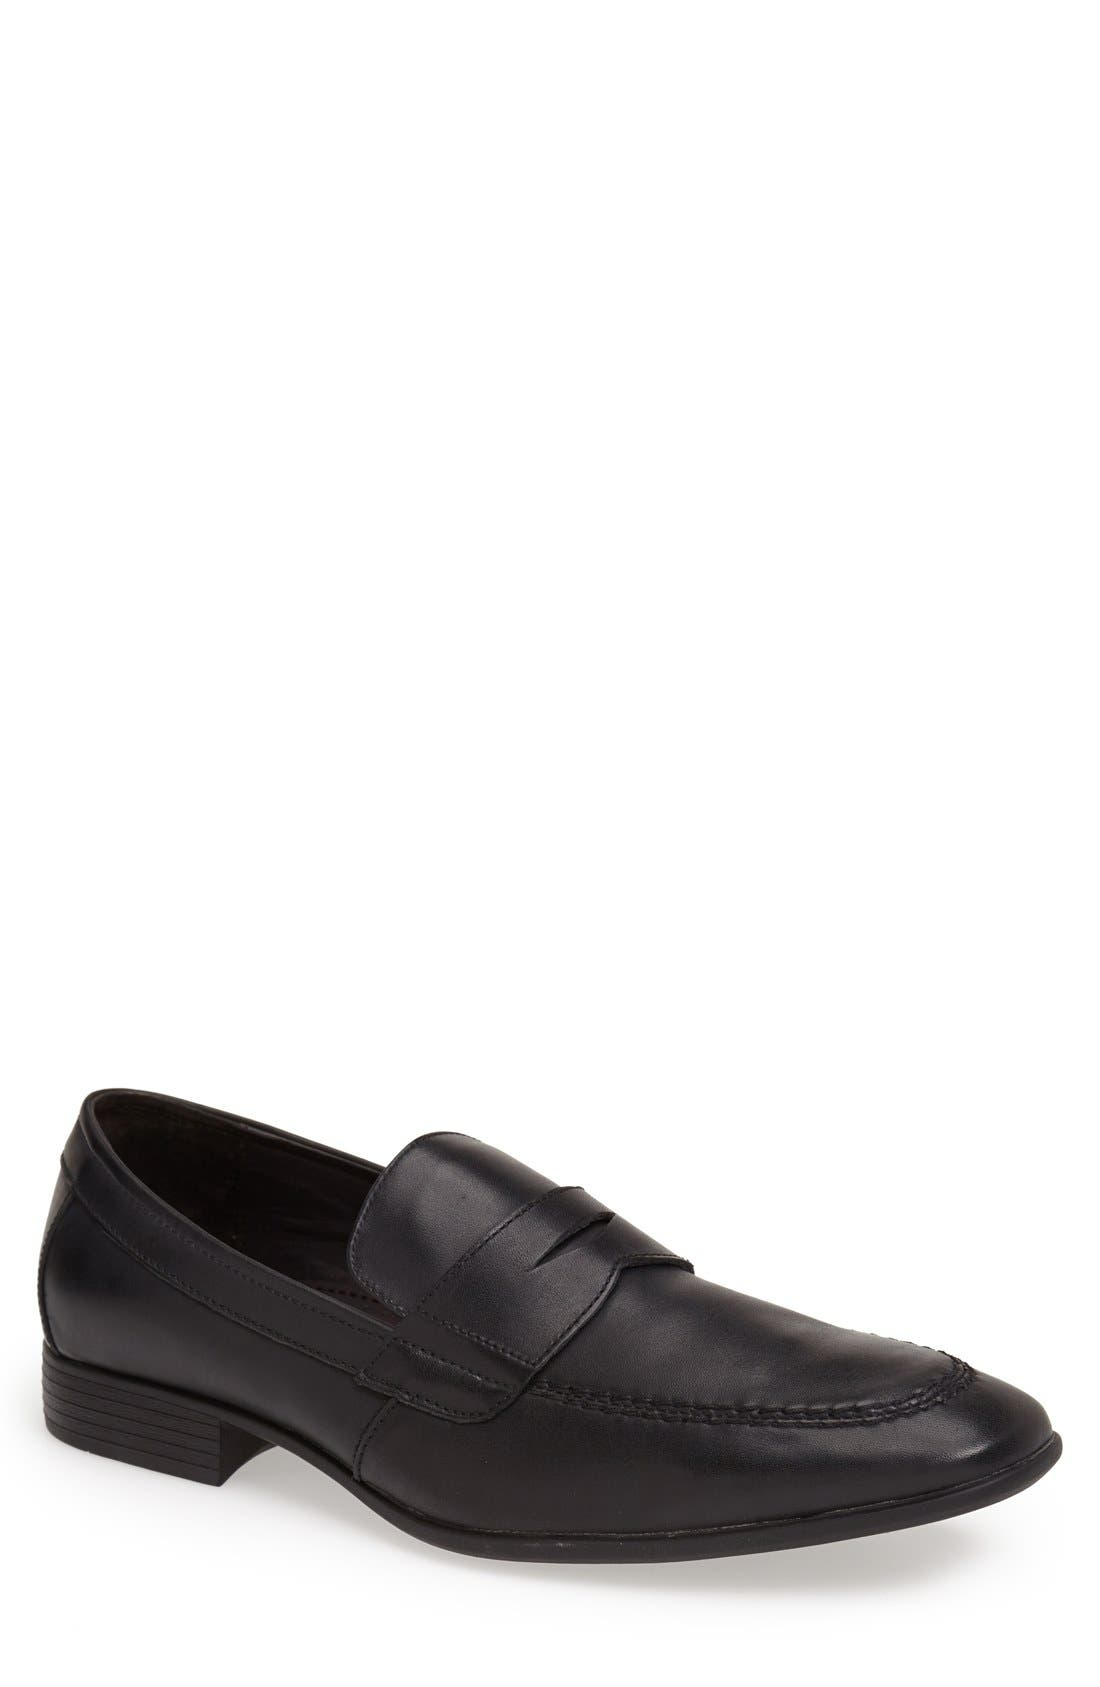 'Reese' Penny Loafer, Main, color, 001